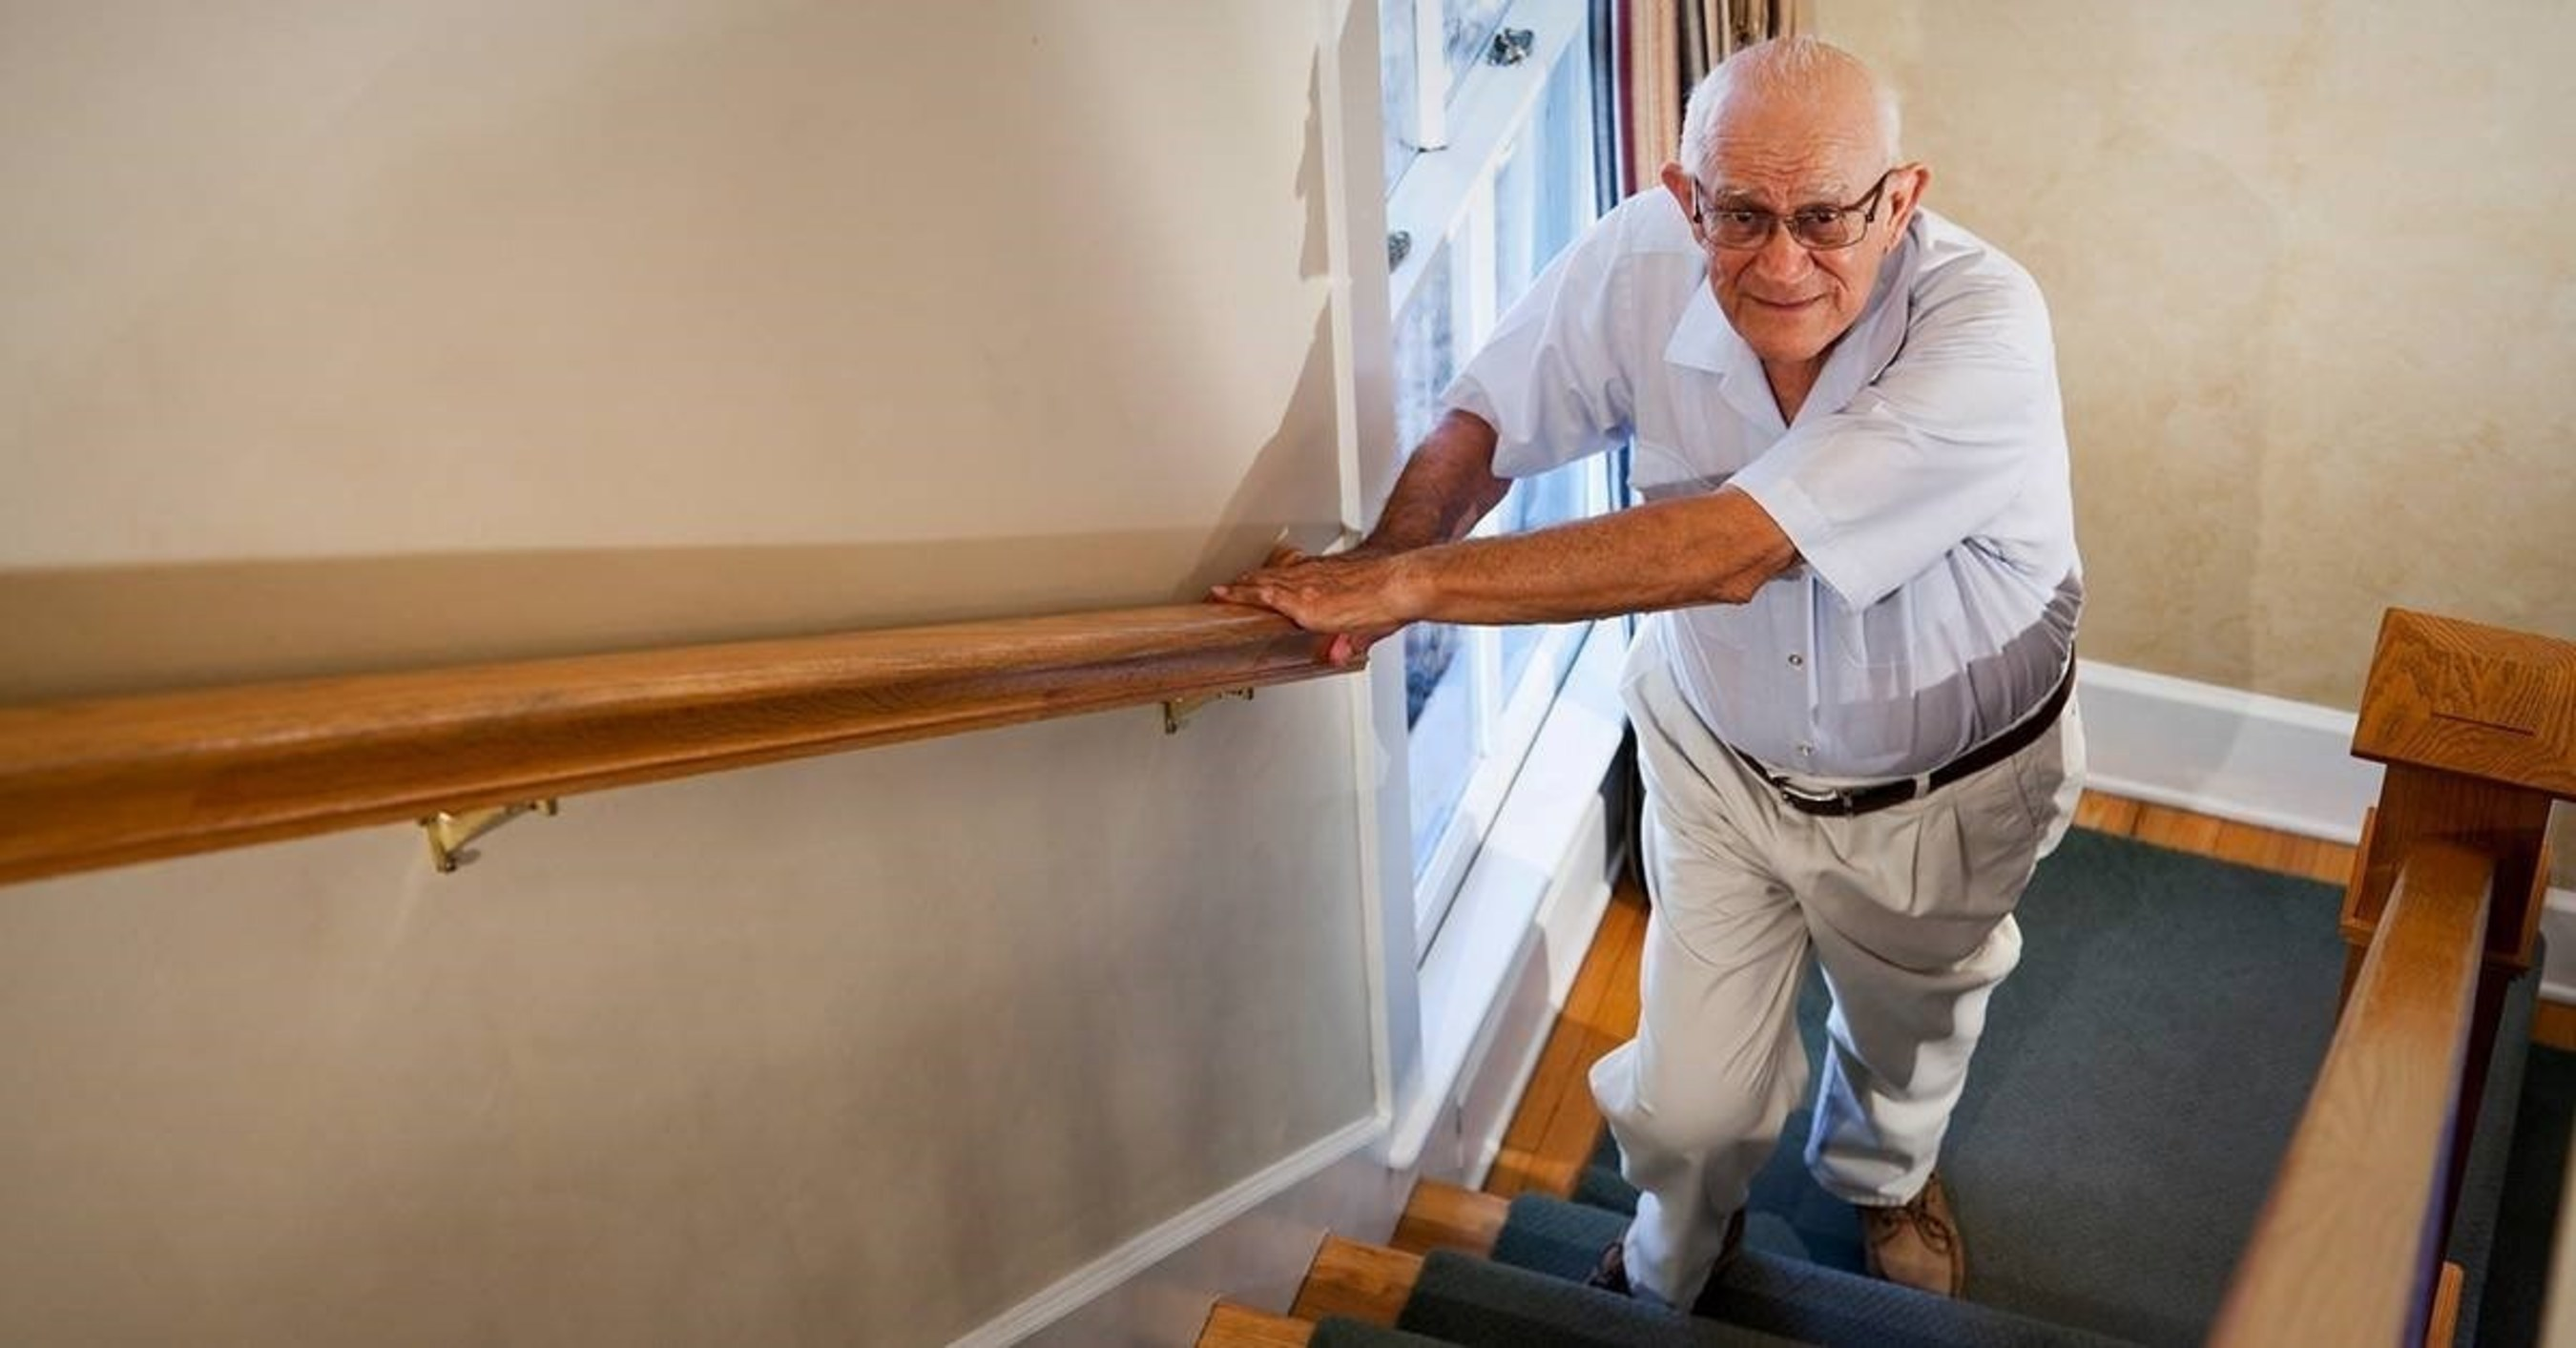 """According to the Centers for Disease Control (CDC), it's estimated that falls account for roughly $31 billion in accrued medical costs each year. Moreover, falls become increasingly dangerous in the later stages of life. Stair lifts are a convenient way to re-establish independence and ensure your loved ones are navigating their homes safely and independently. """"We've found that a person will be much happier aging at home instead of an assisted living facility,"""" said Martin Stevenson, Stannah Stairlifts..."""